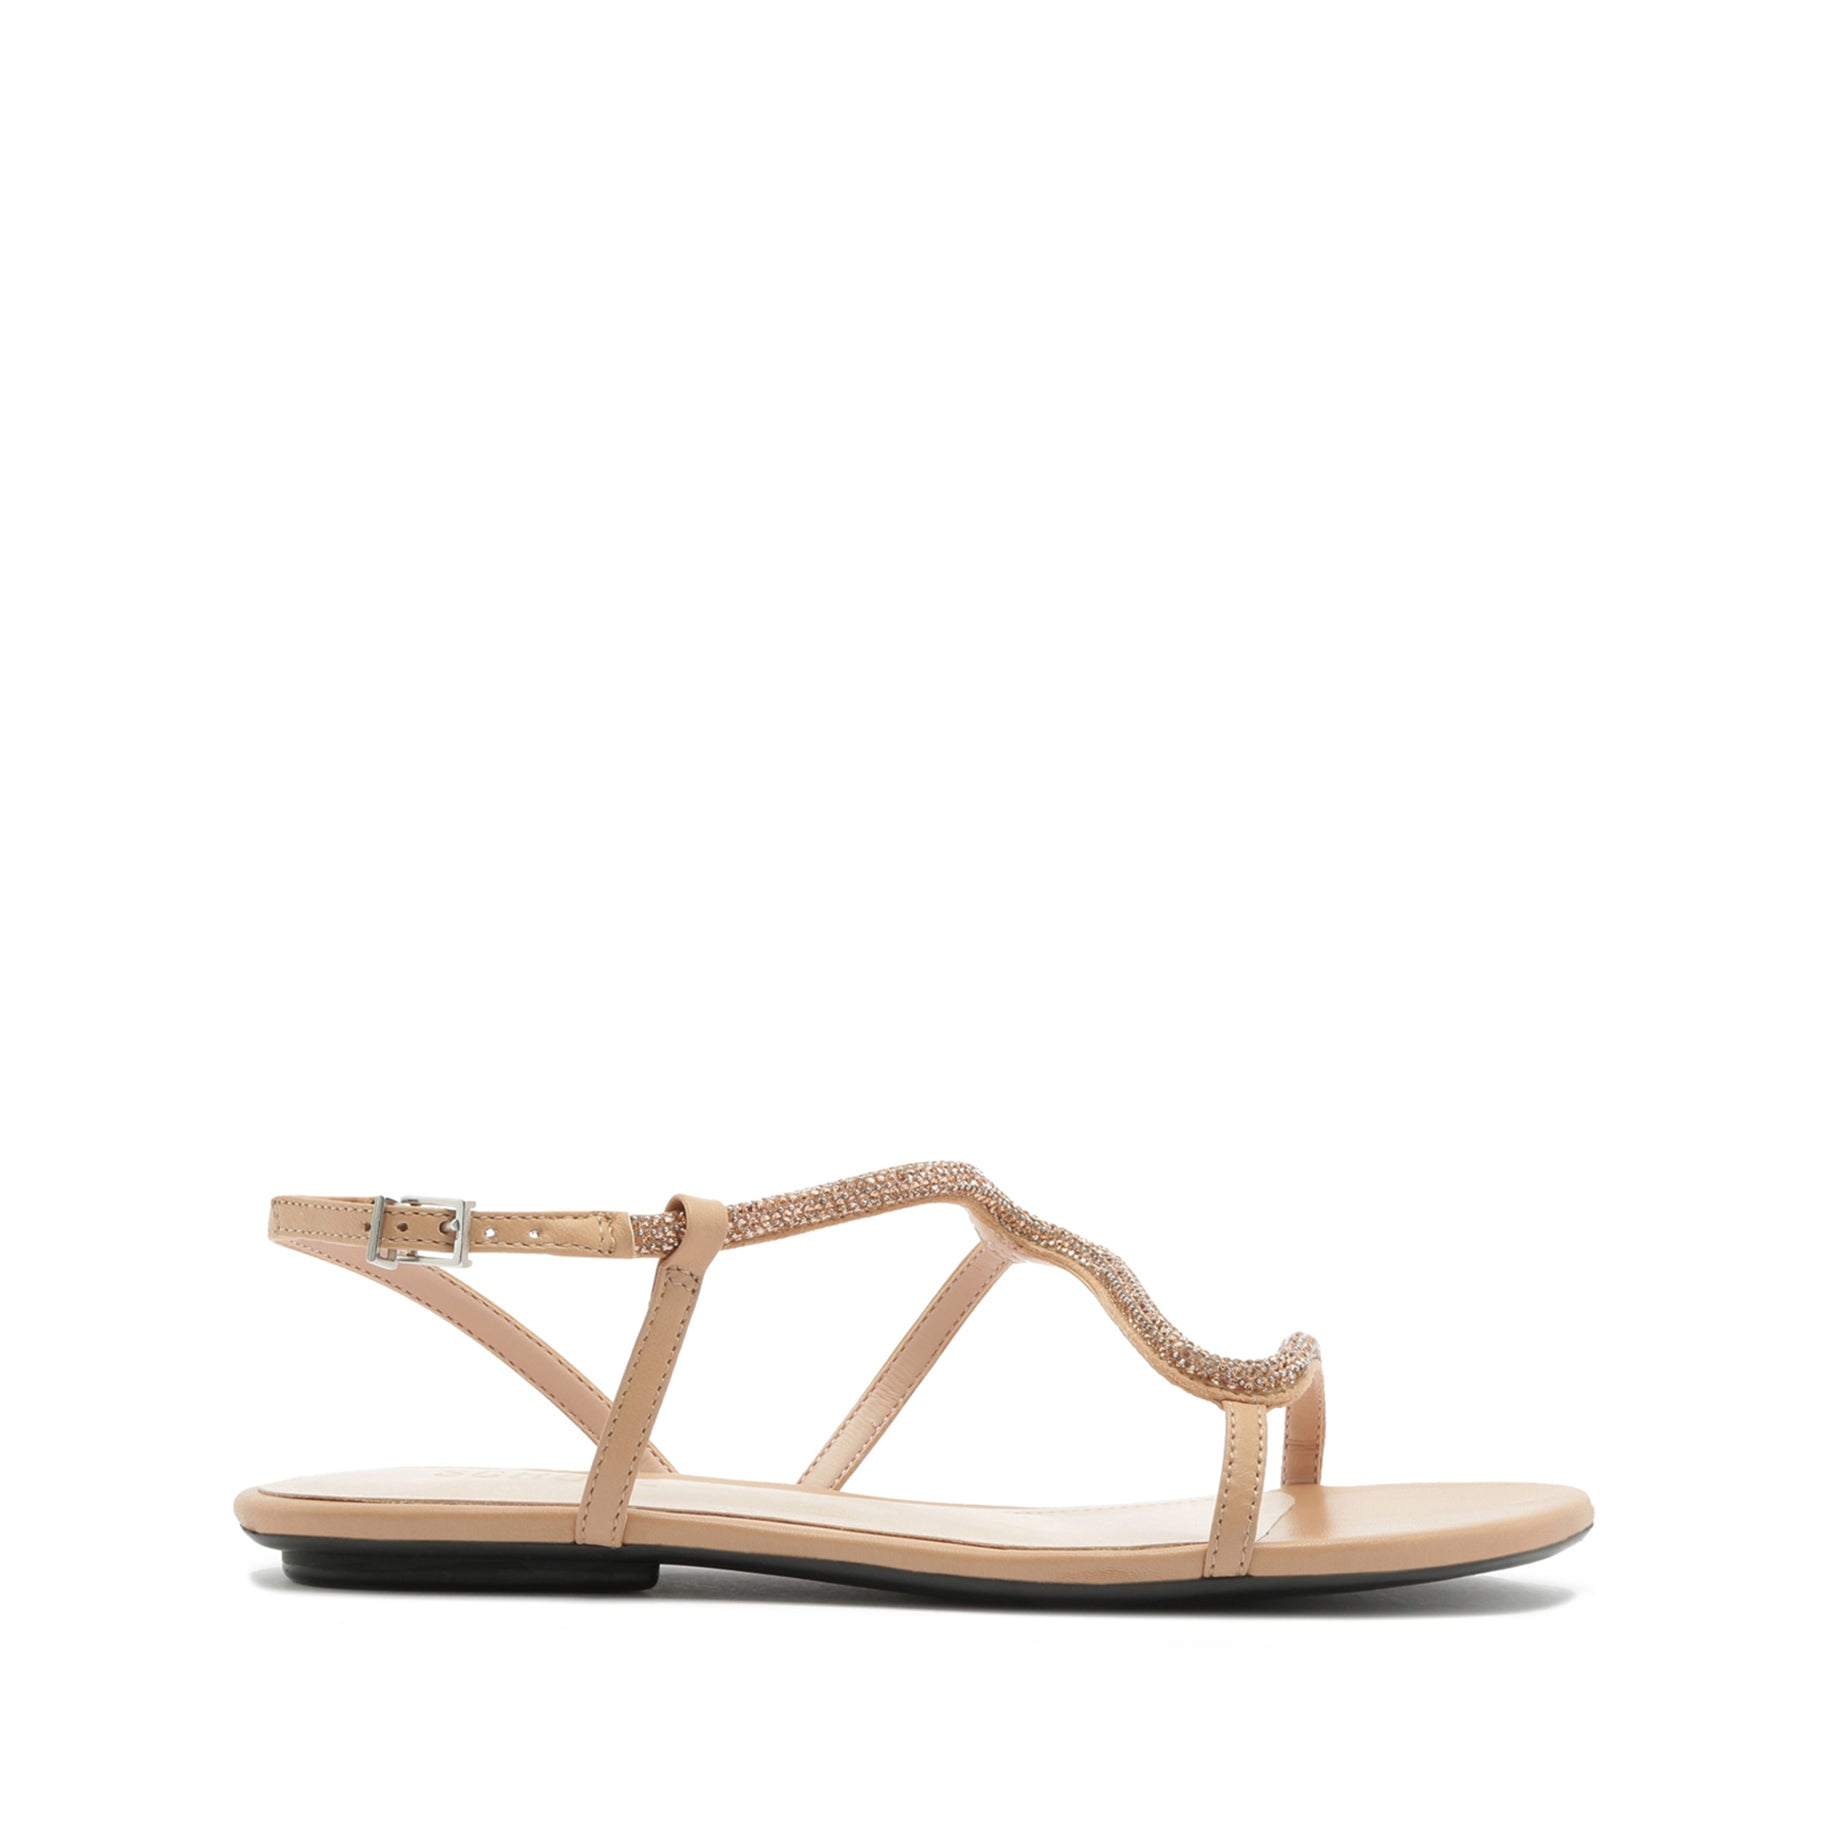 Georgia Lee Flat Sandal